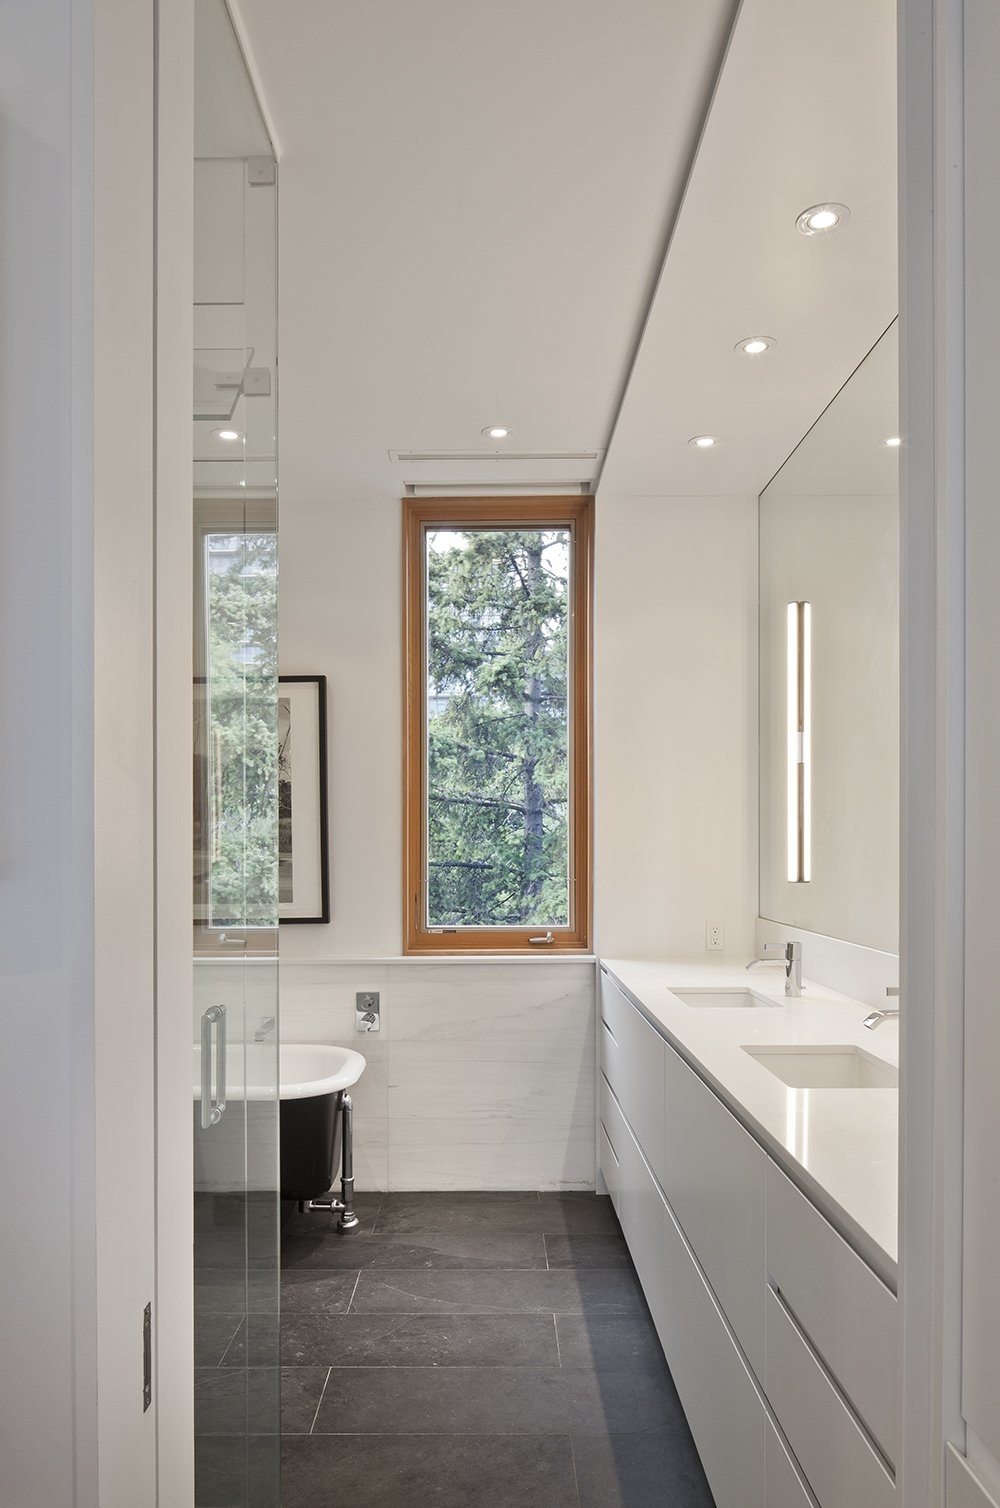 In the master bathroom, Dolomite marble was installed on the walls to complement Caesarstone countertops. Both contrast with the dark Montauk slate on the floor.  King West by Kelly Dawson